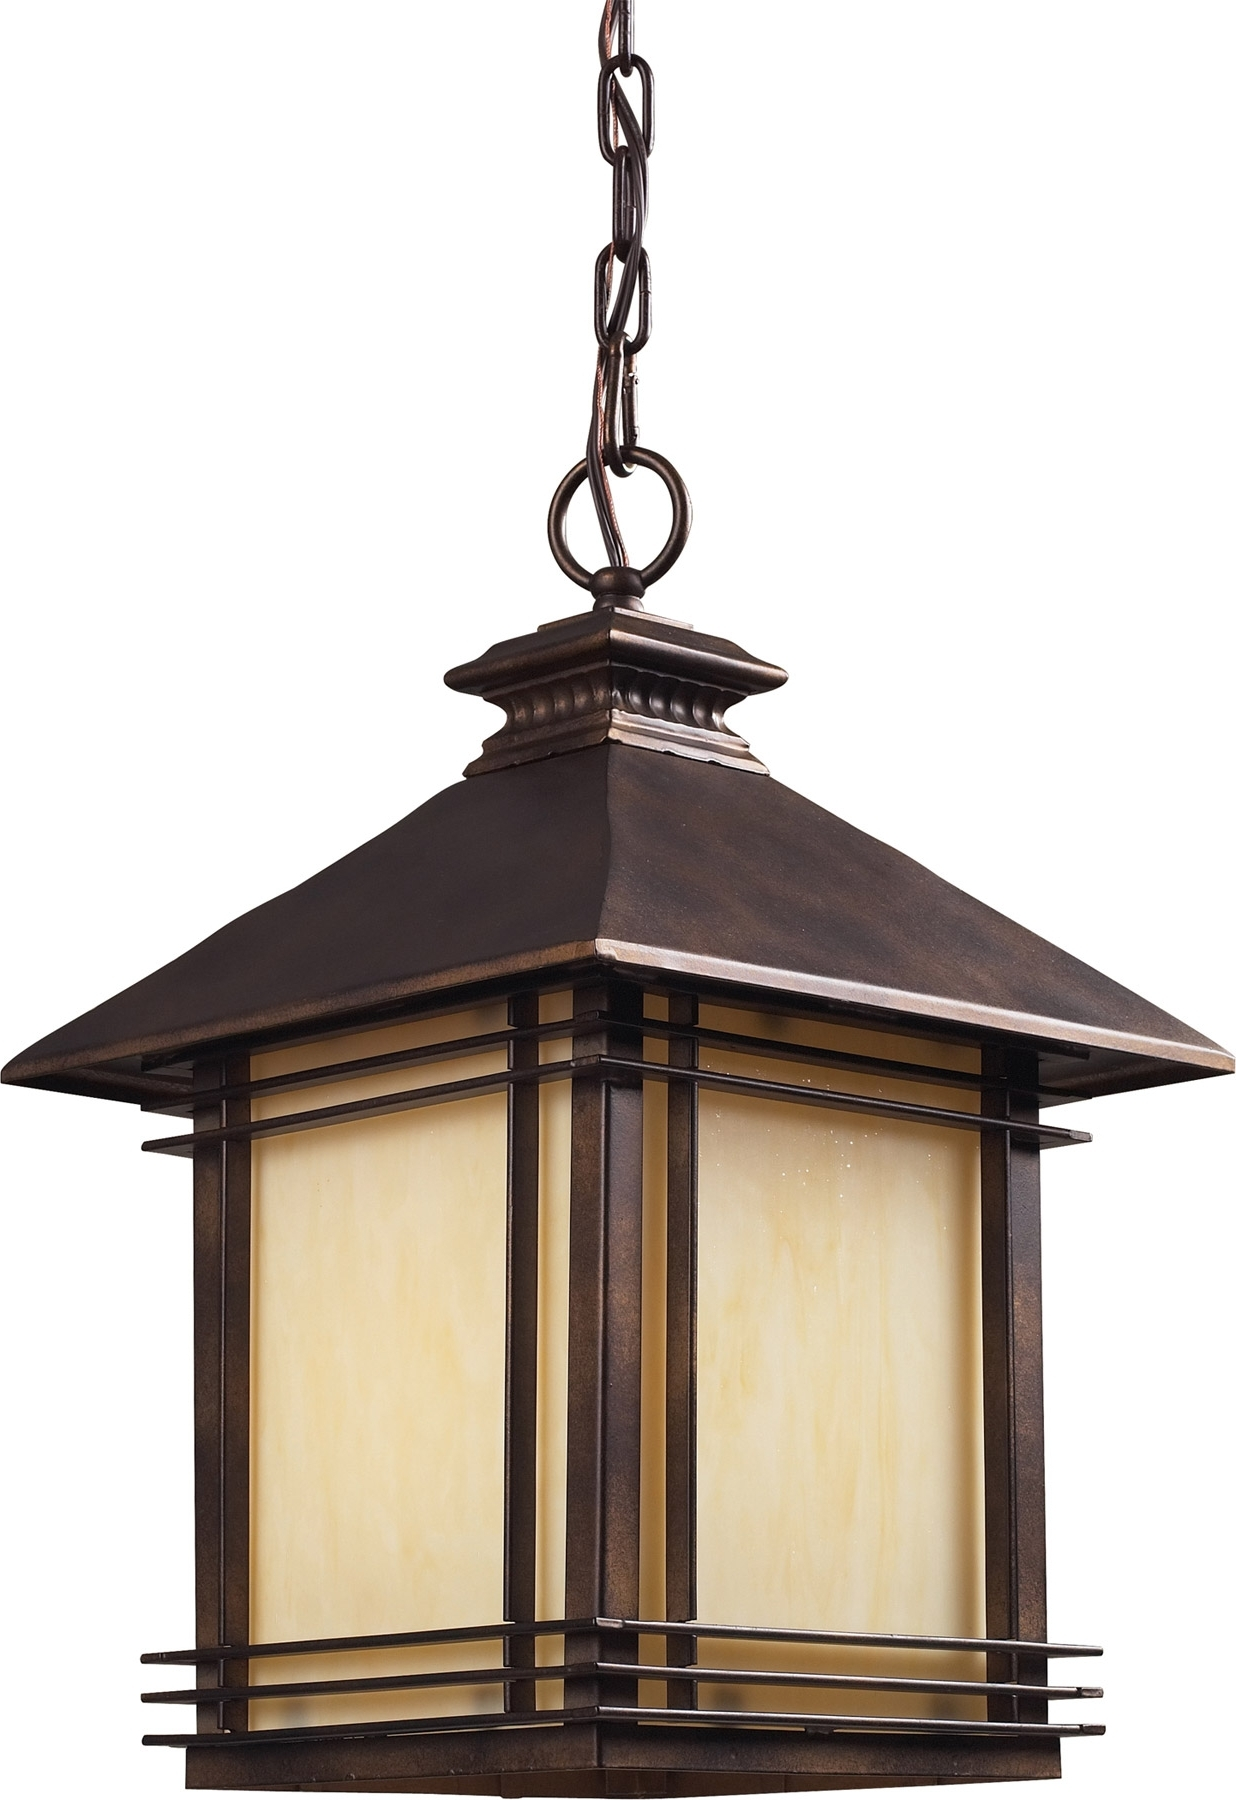 Lighting 42103/1 Blackwell Outdoor Hanging Lantern Within Most Up To Date Indoor Outdoor Hanging Lights (View 8 of 20)